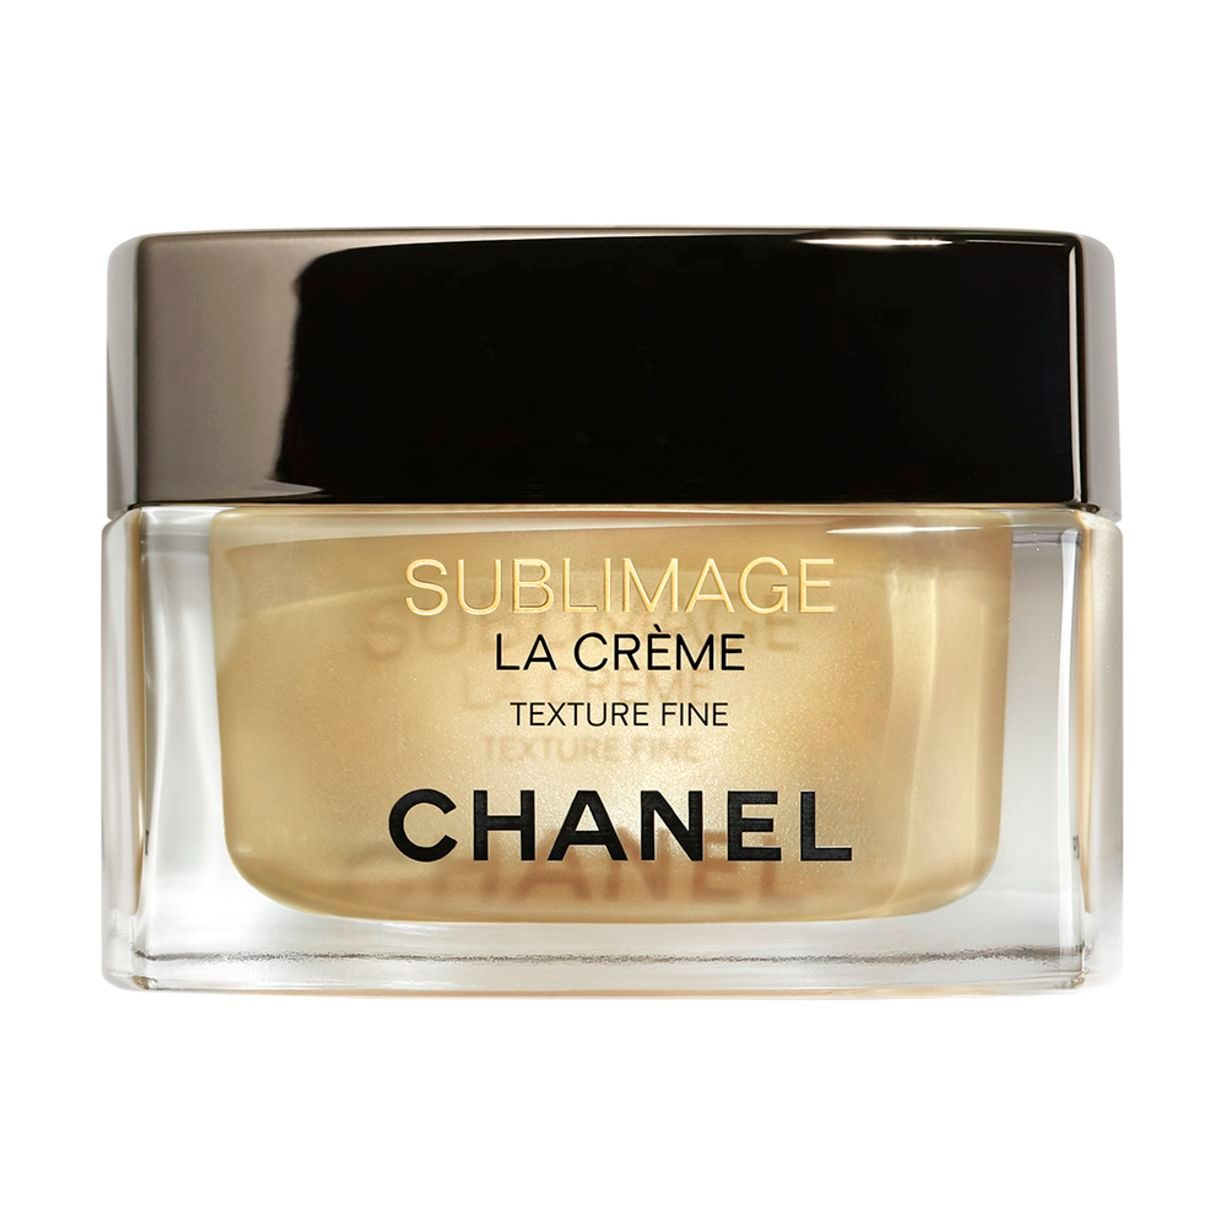 SUBLIMAGE LA CRÈME ULTIMATE SKIN REVITALIZATION - TEXTURE FINE 50g